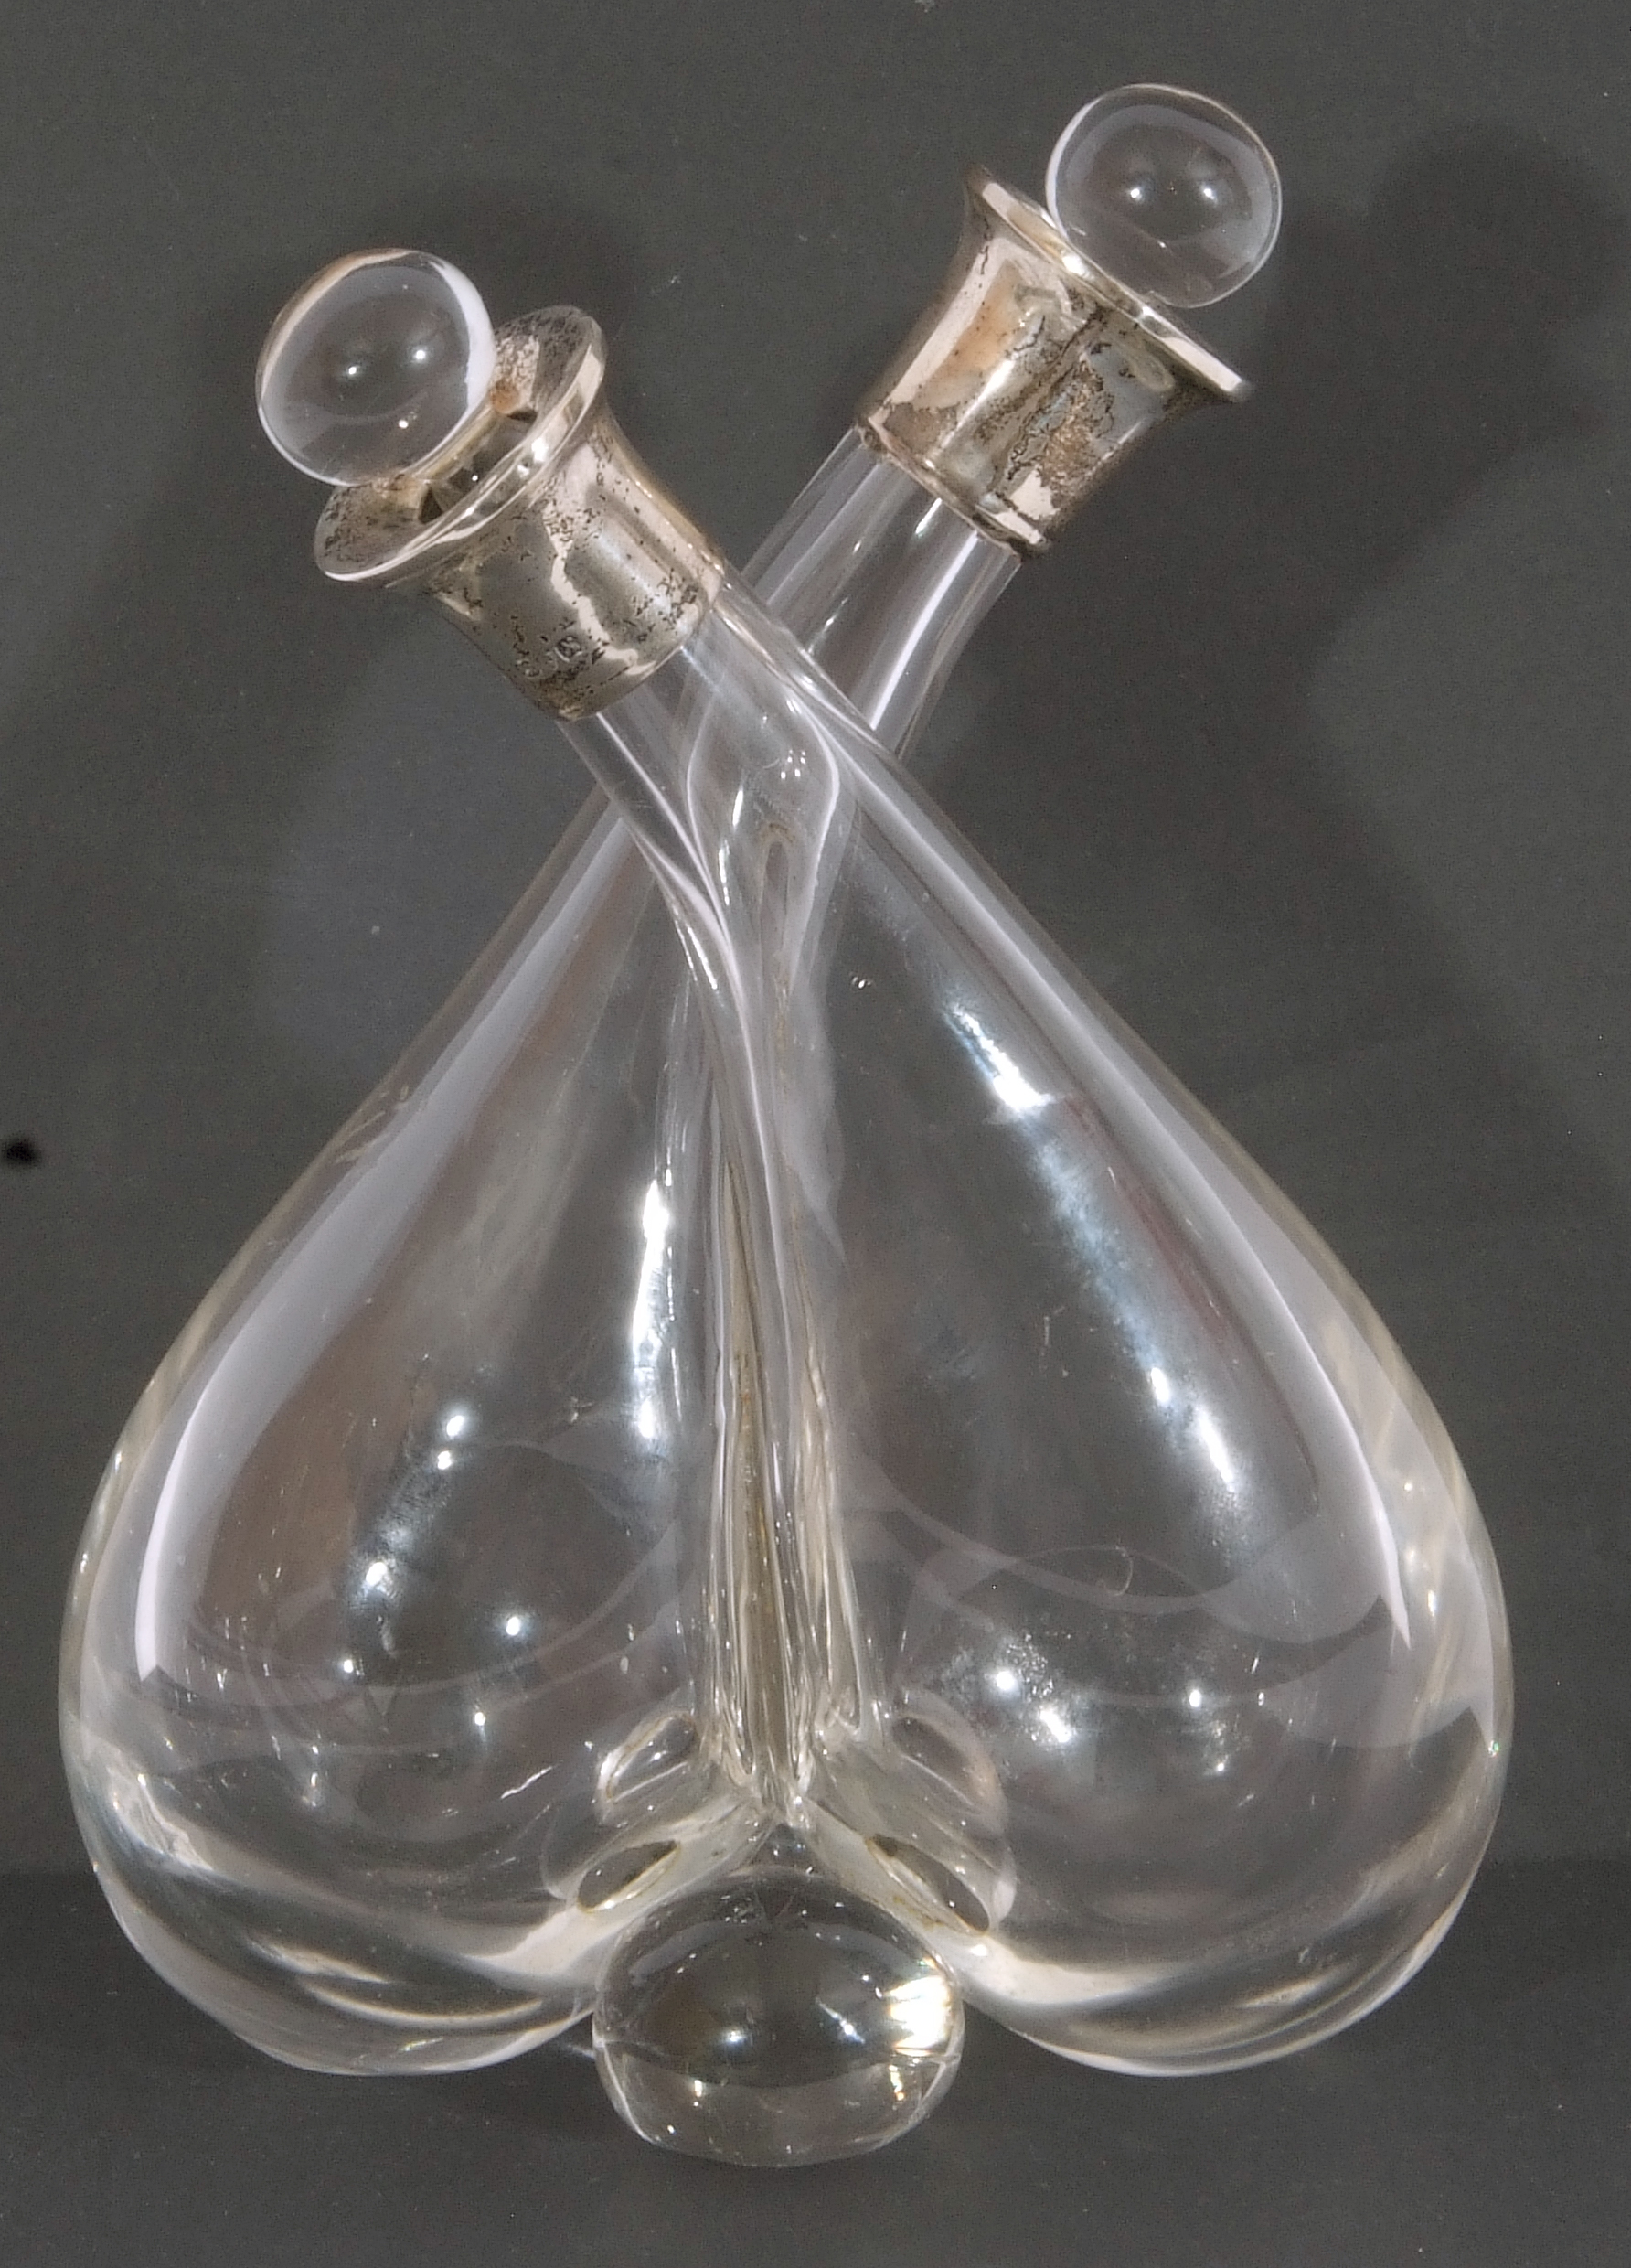 Silver mounted double vinegar and oil bottle, formed as two aubergine shaped glass bottles with - Image 6 of 7